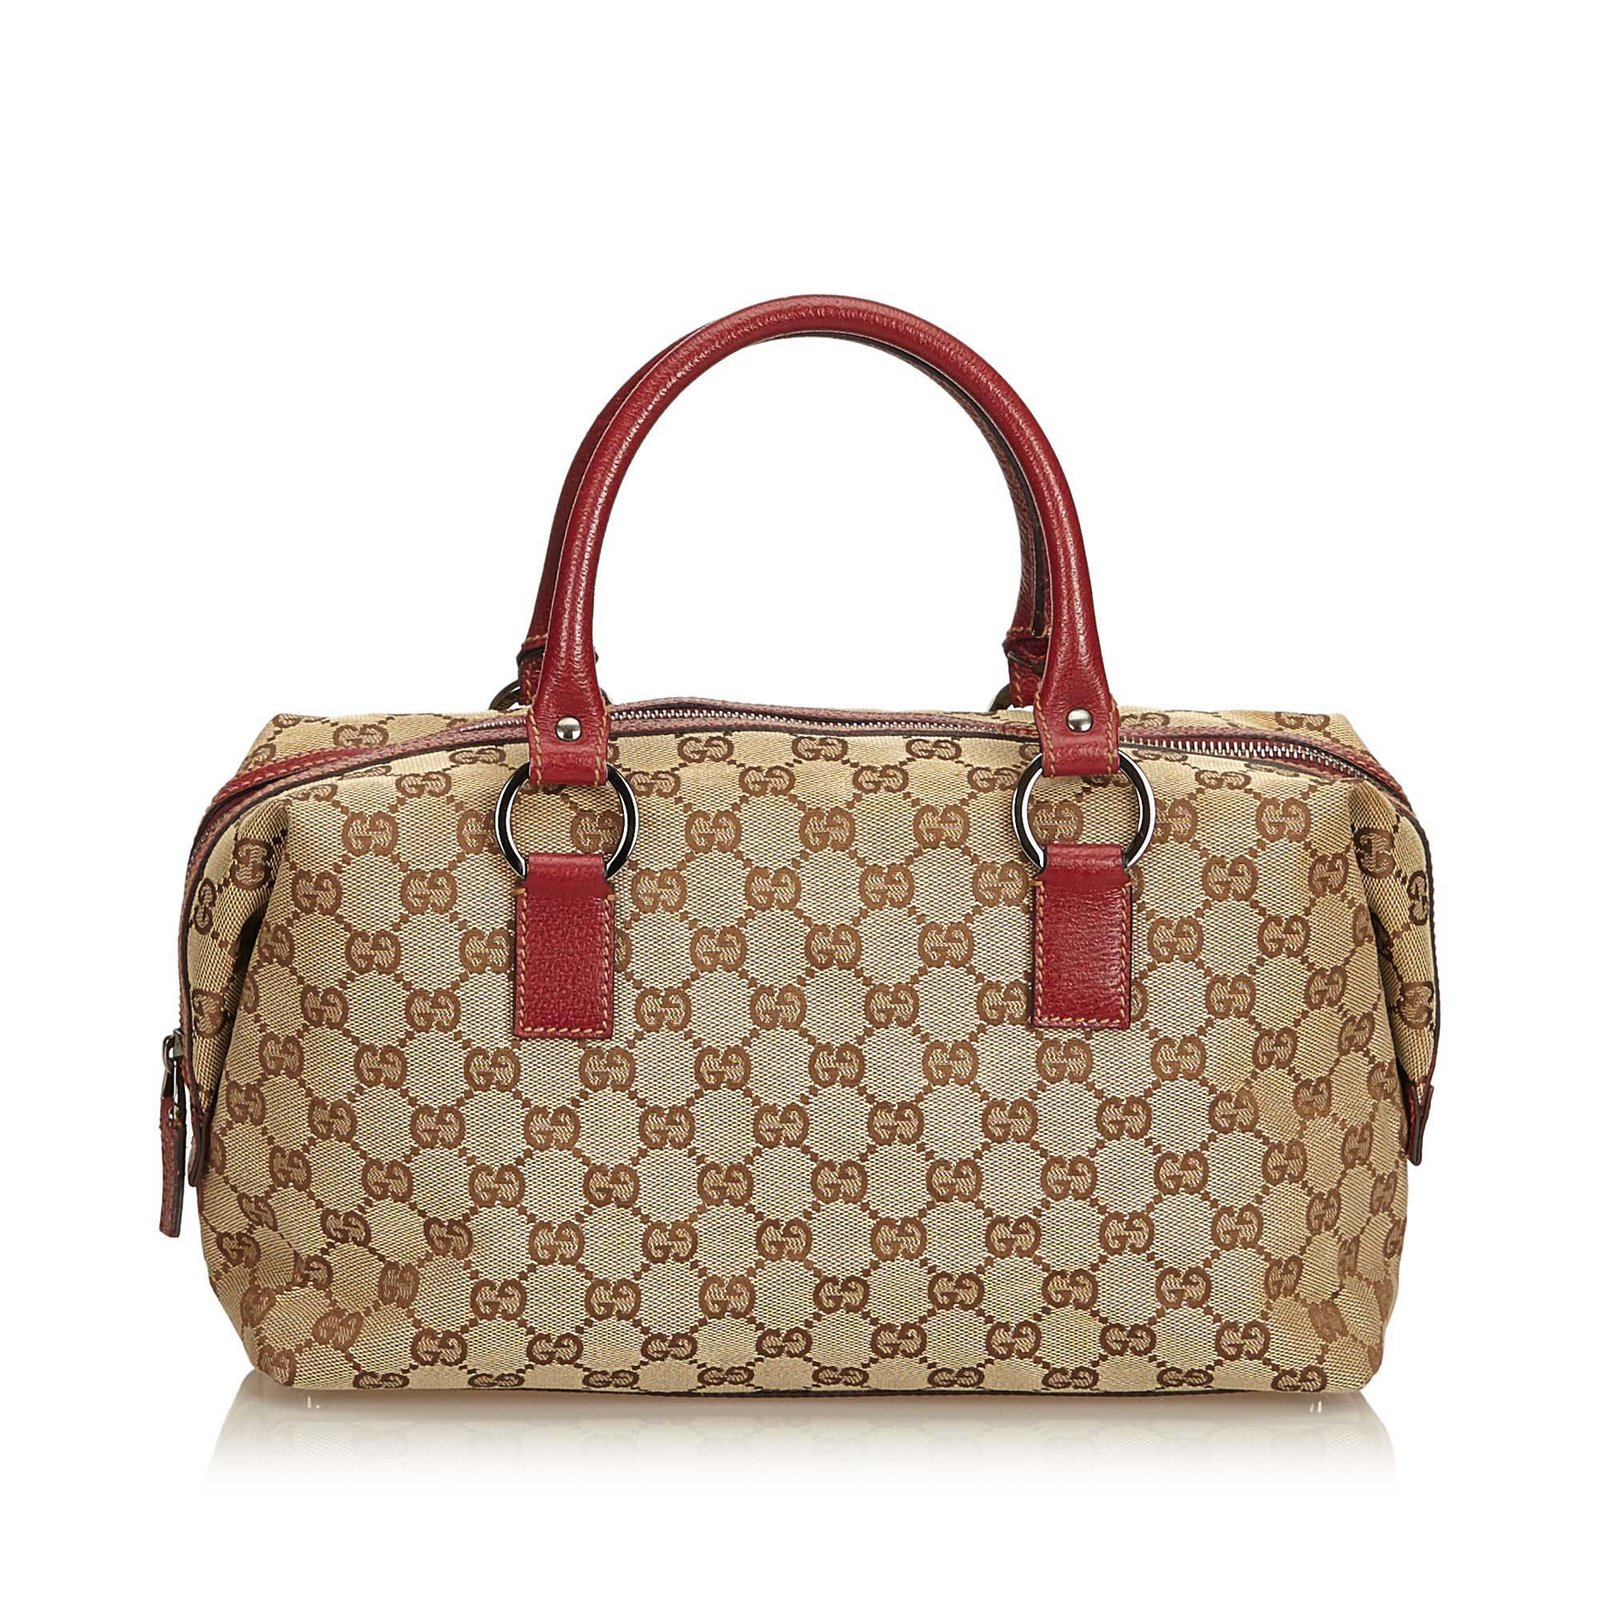 78b41a1c6 Gucci Guccissima Jacquard Boston Bag Handbags Leather,Other,Cloth Brown ,Red,Beige